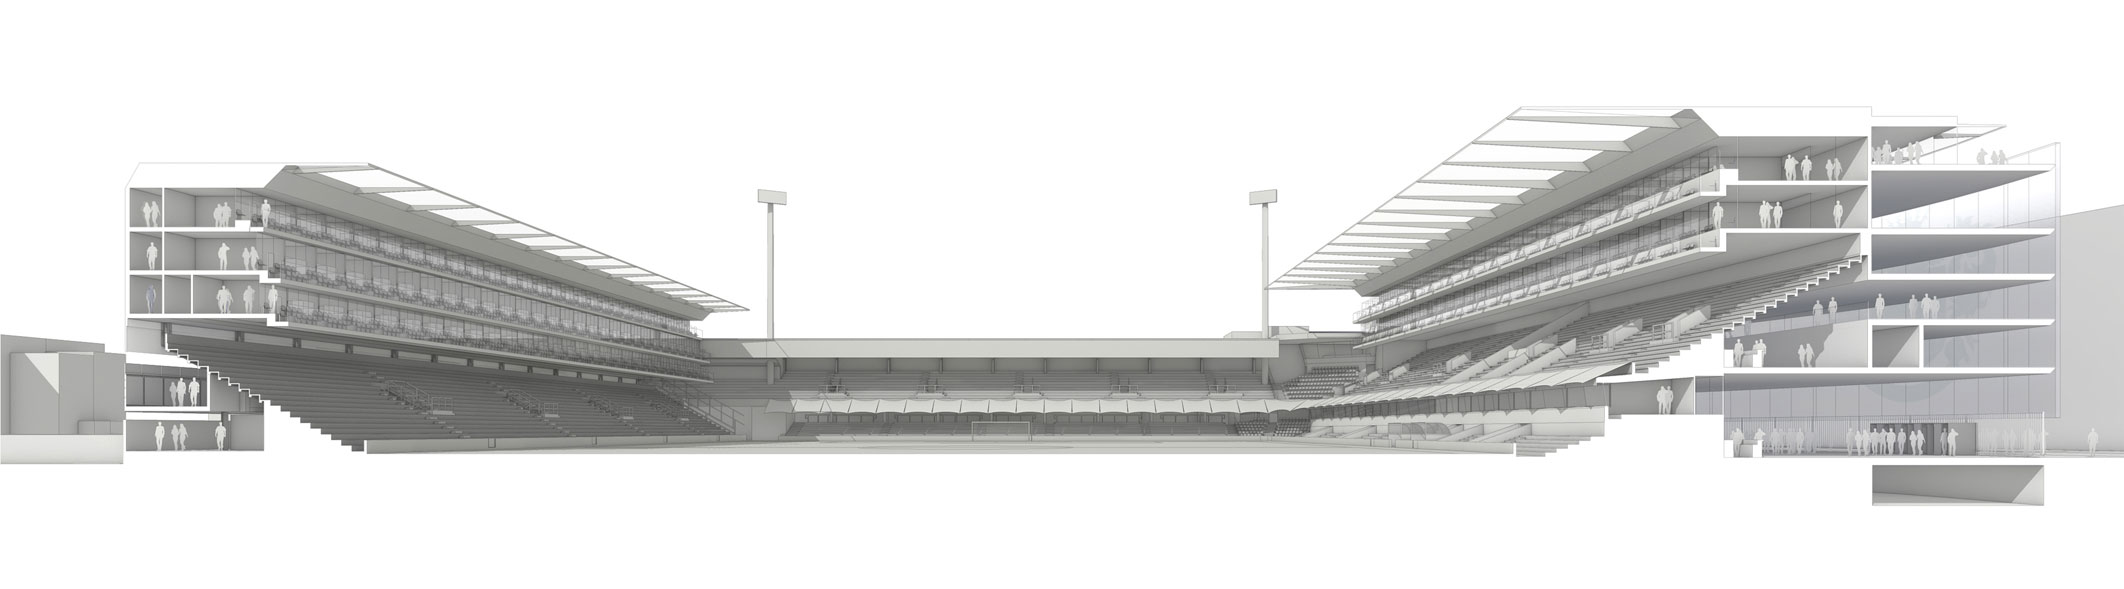 QPR Stadium sectional view